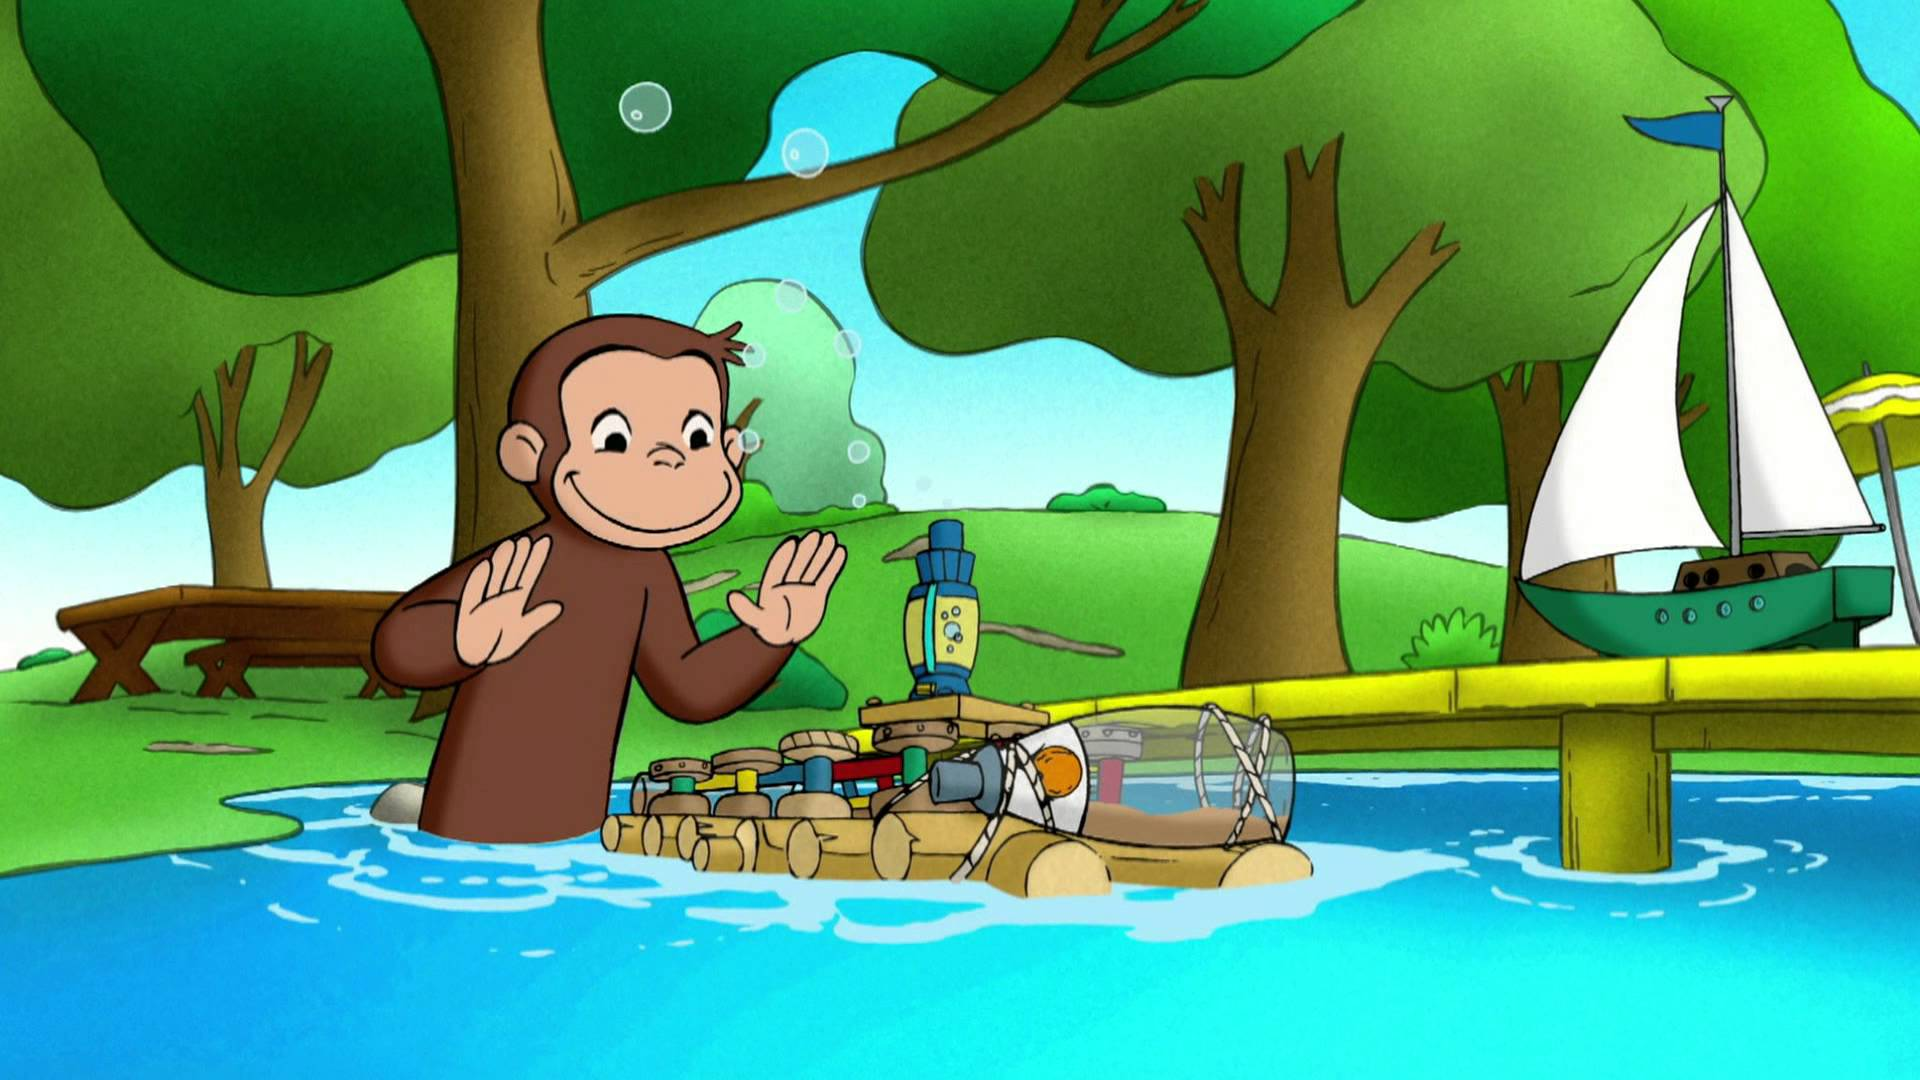 image - maxresdefault1 | curious george wiki | fandom powered